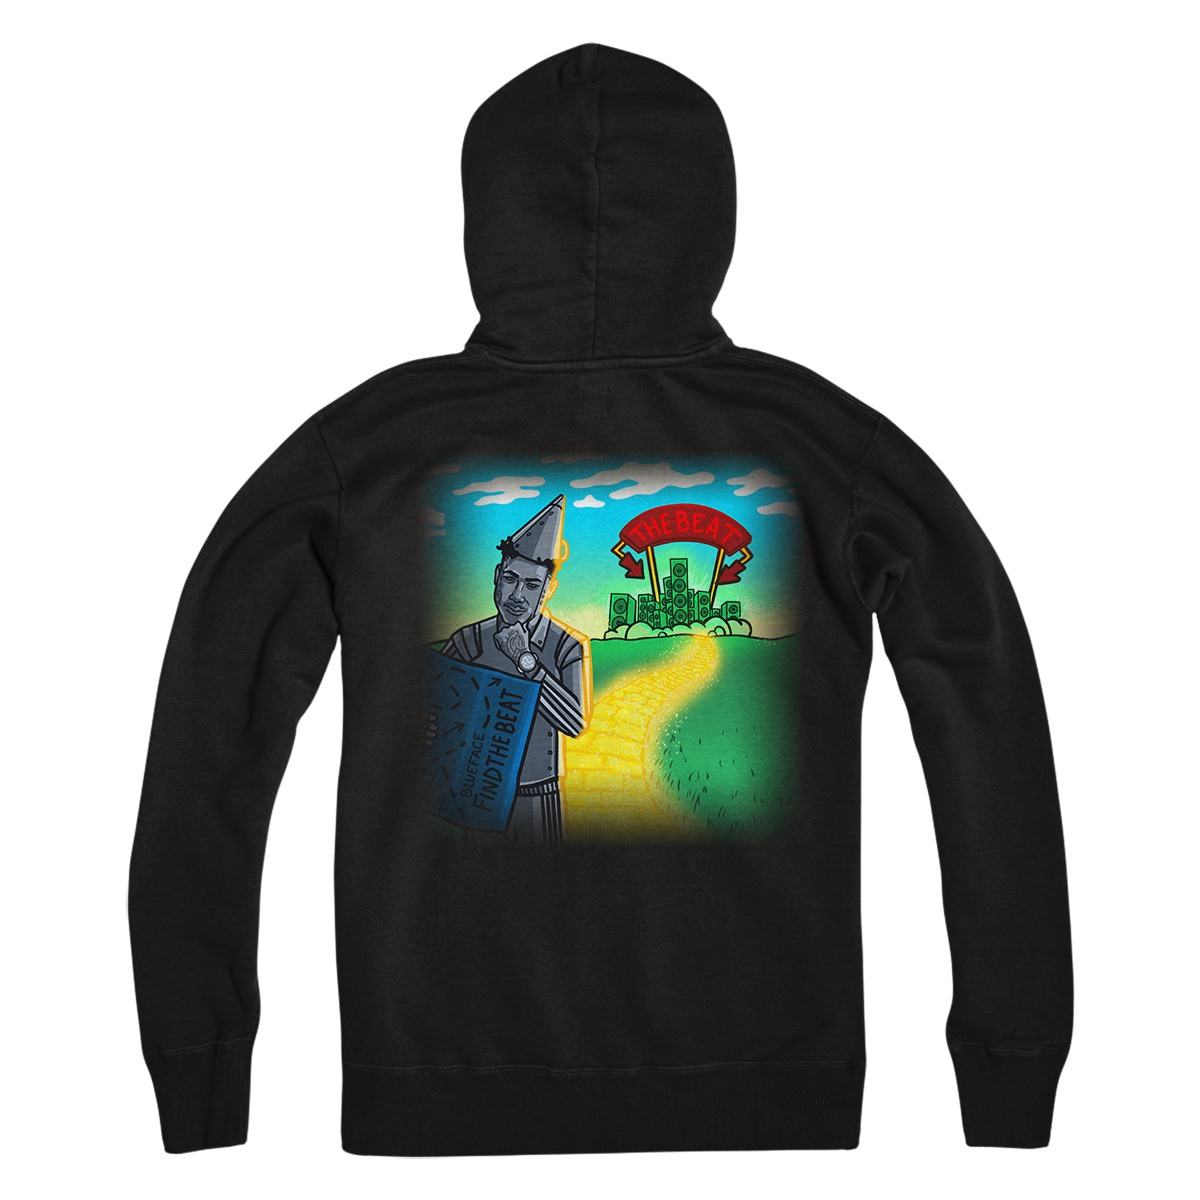 Find The Beat Album Cover Hoodie